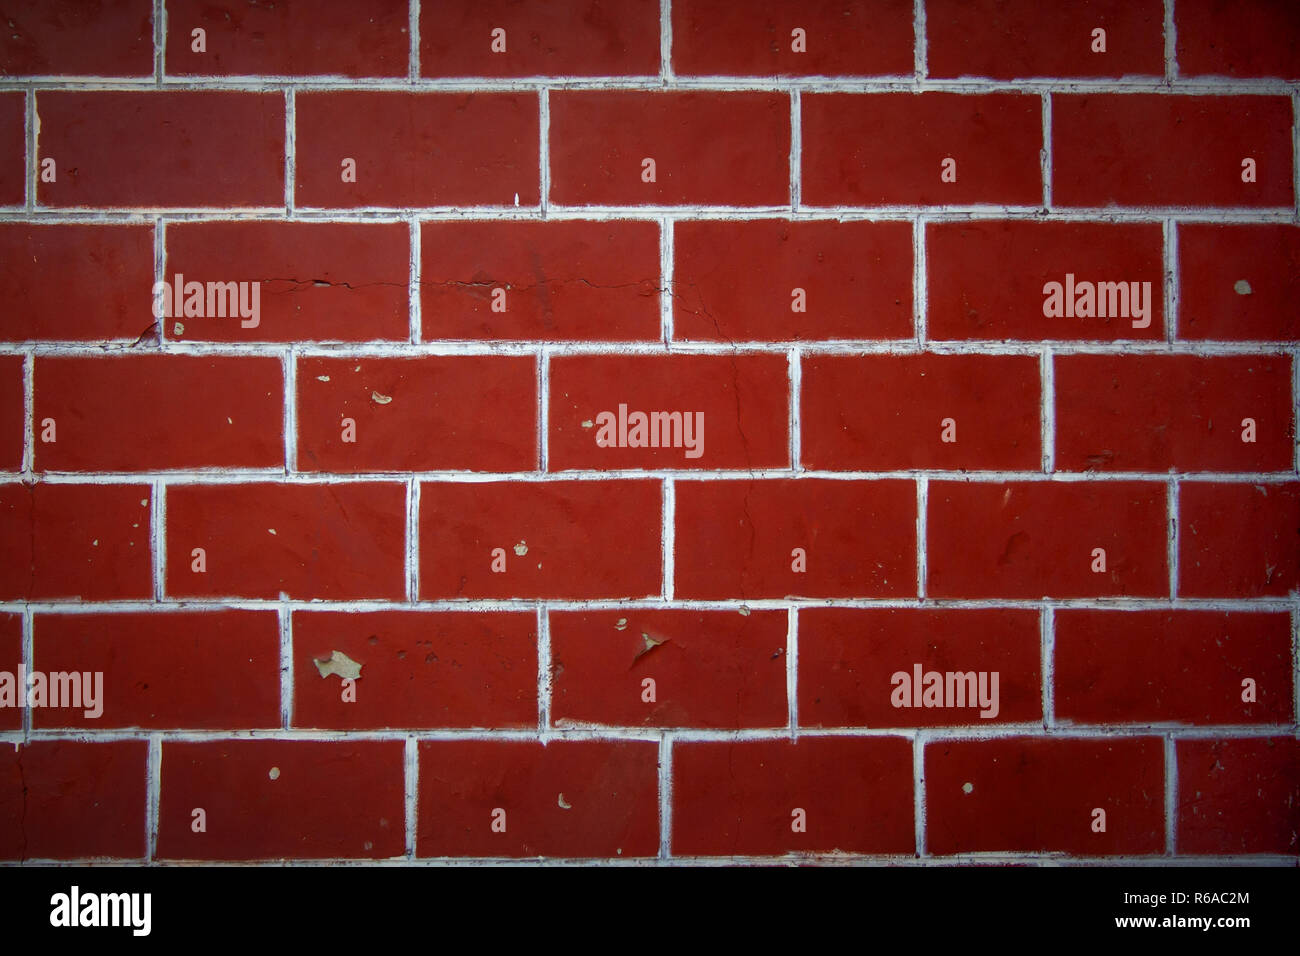 Red Paint Wall Red bricks wall with cracked red paint texture. Red vrick background for  design and text